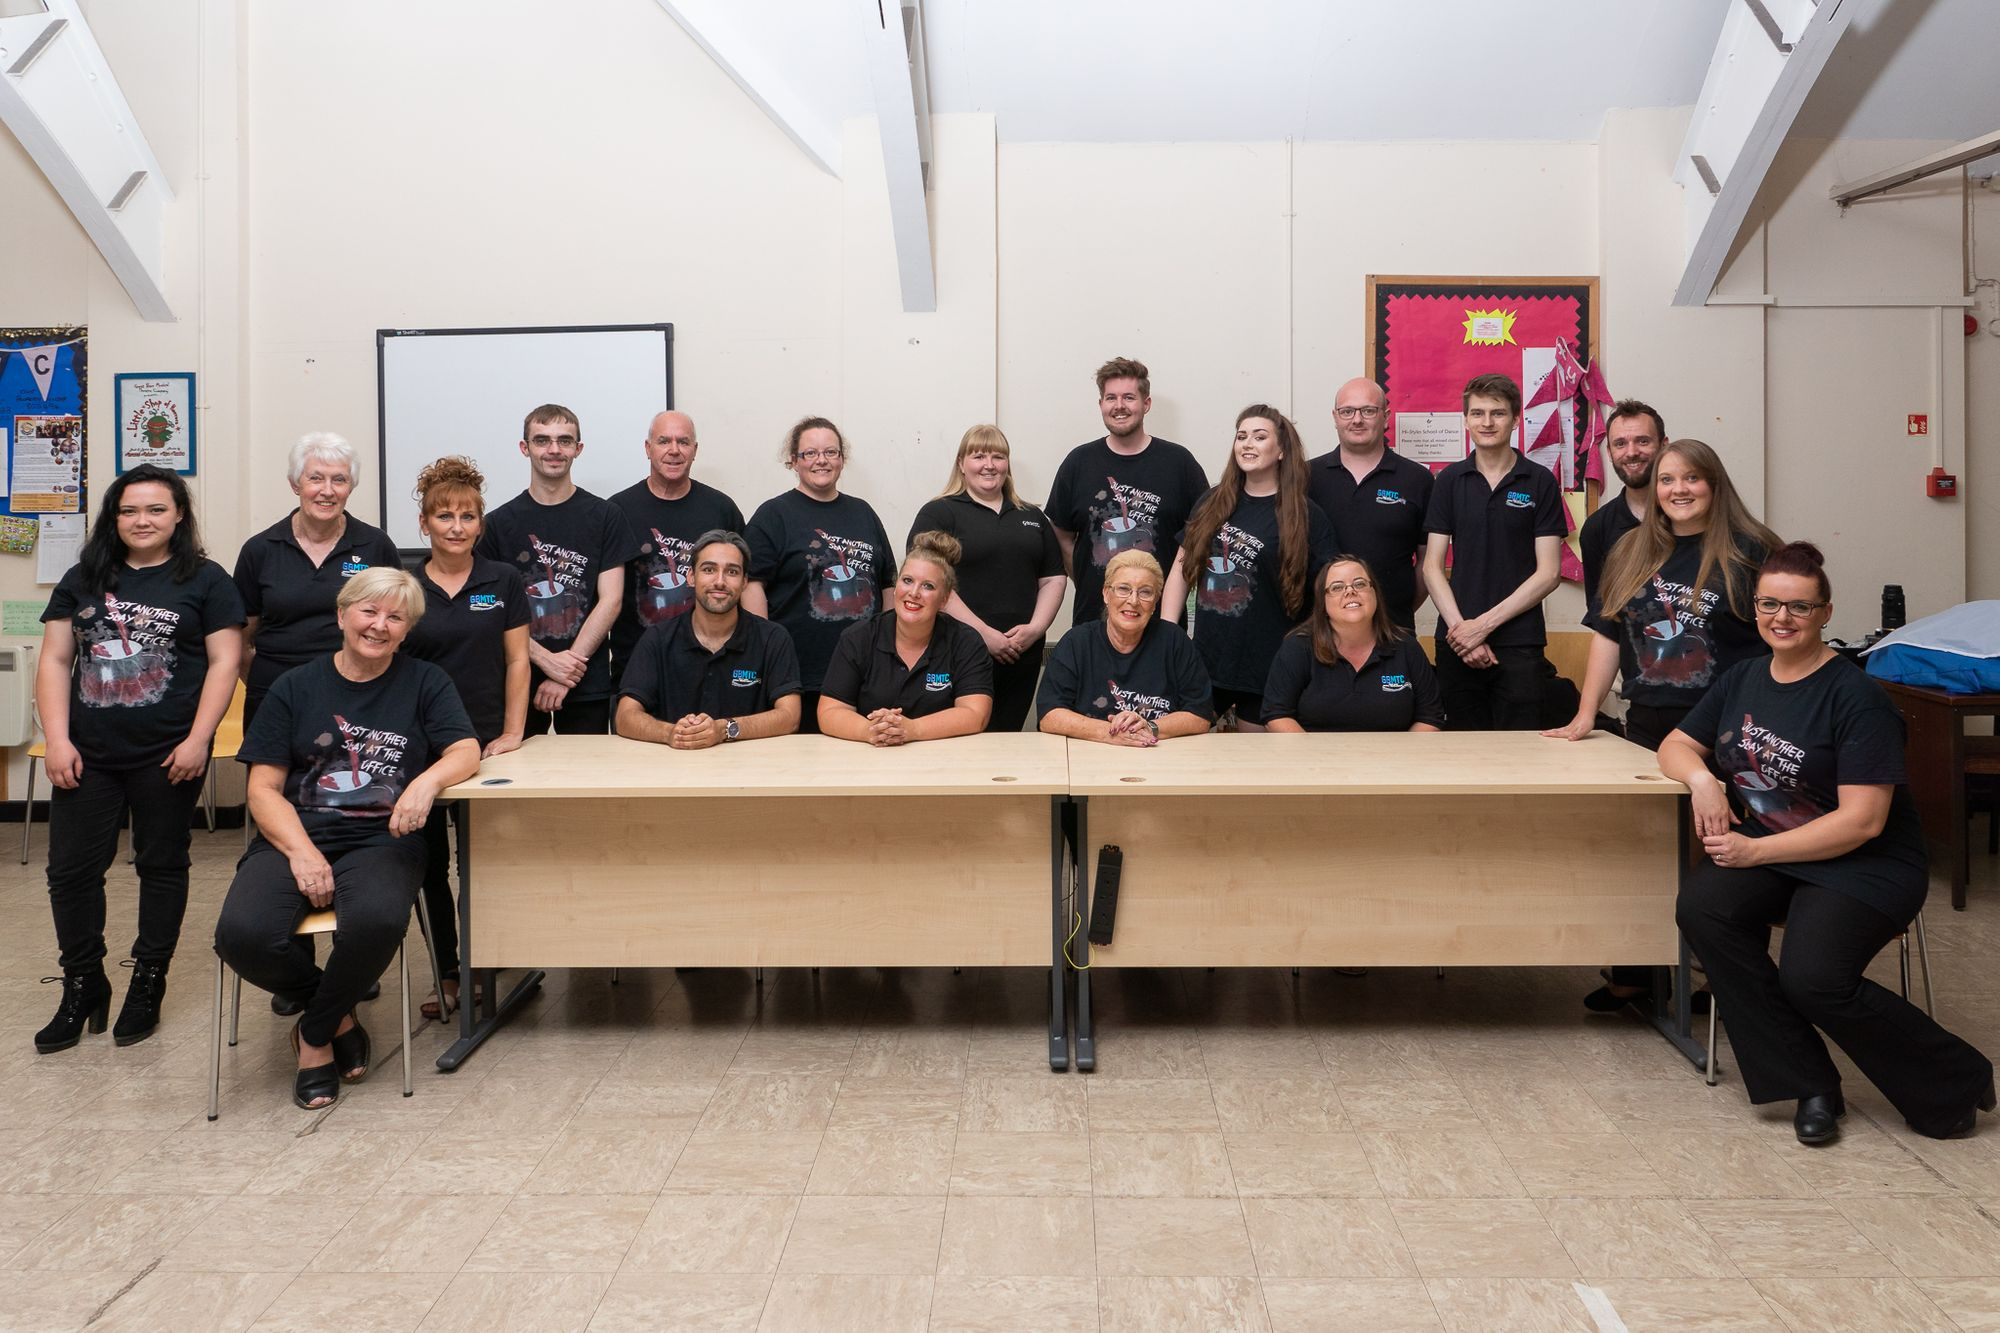 Musical Theatre comes to Central England Co-operative